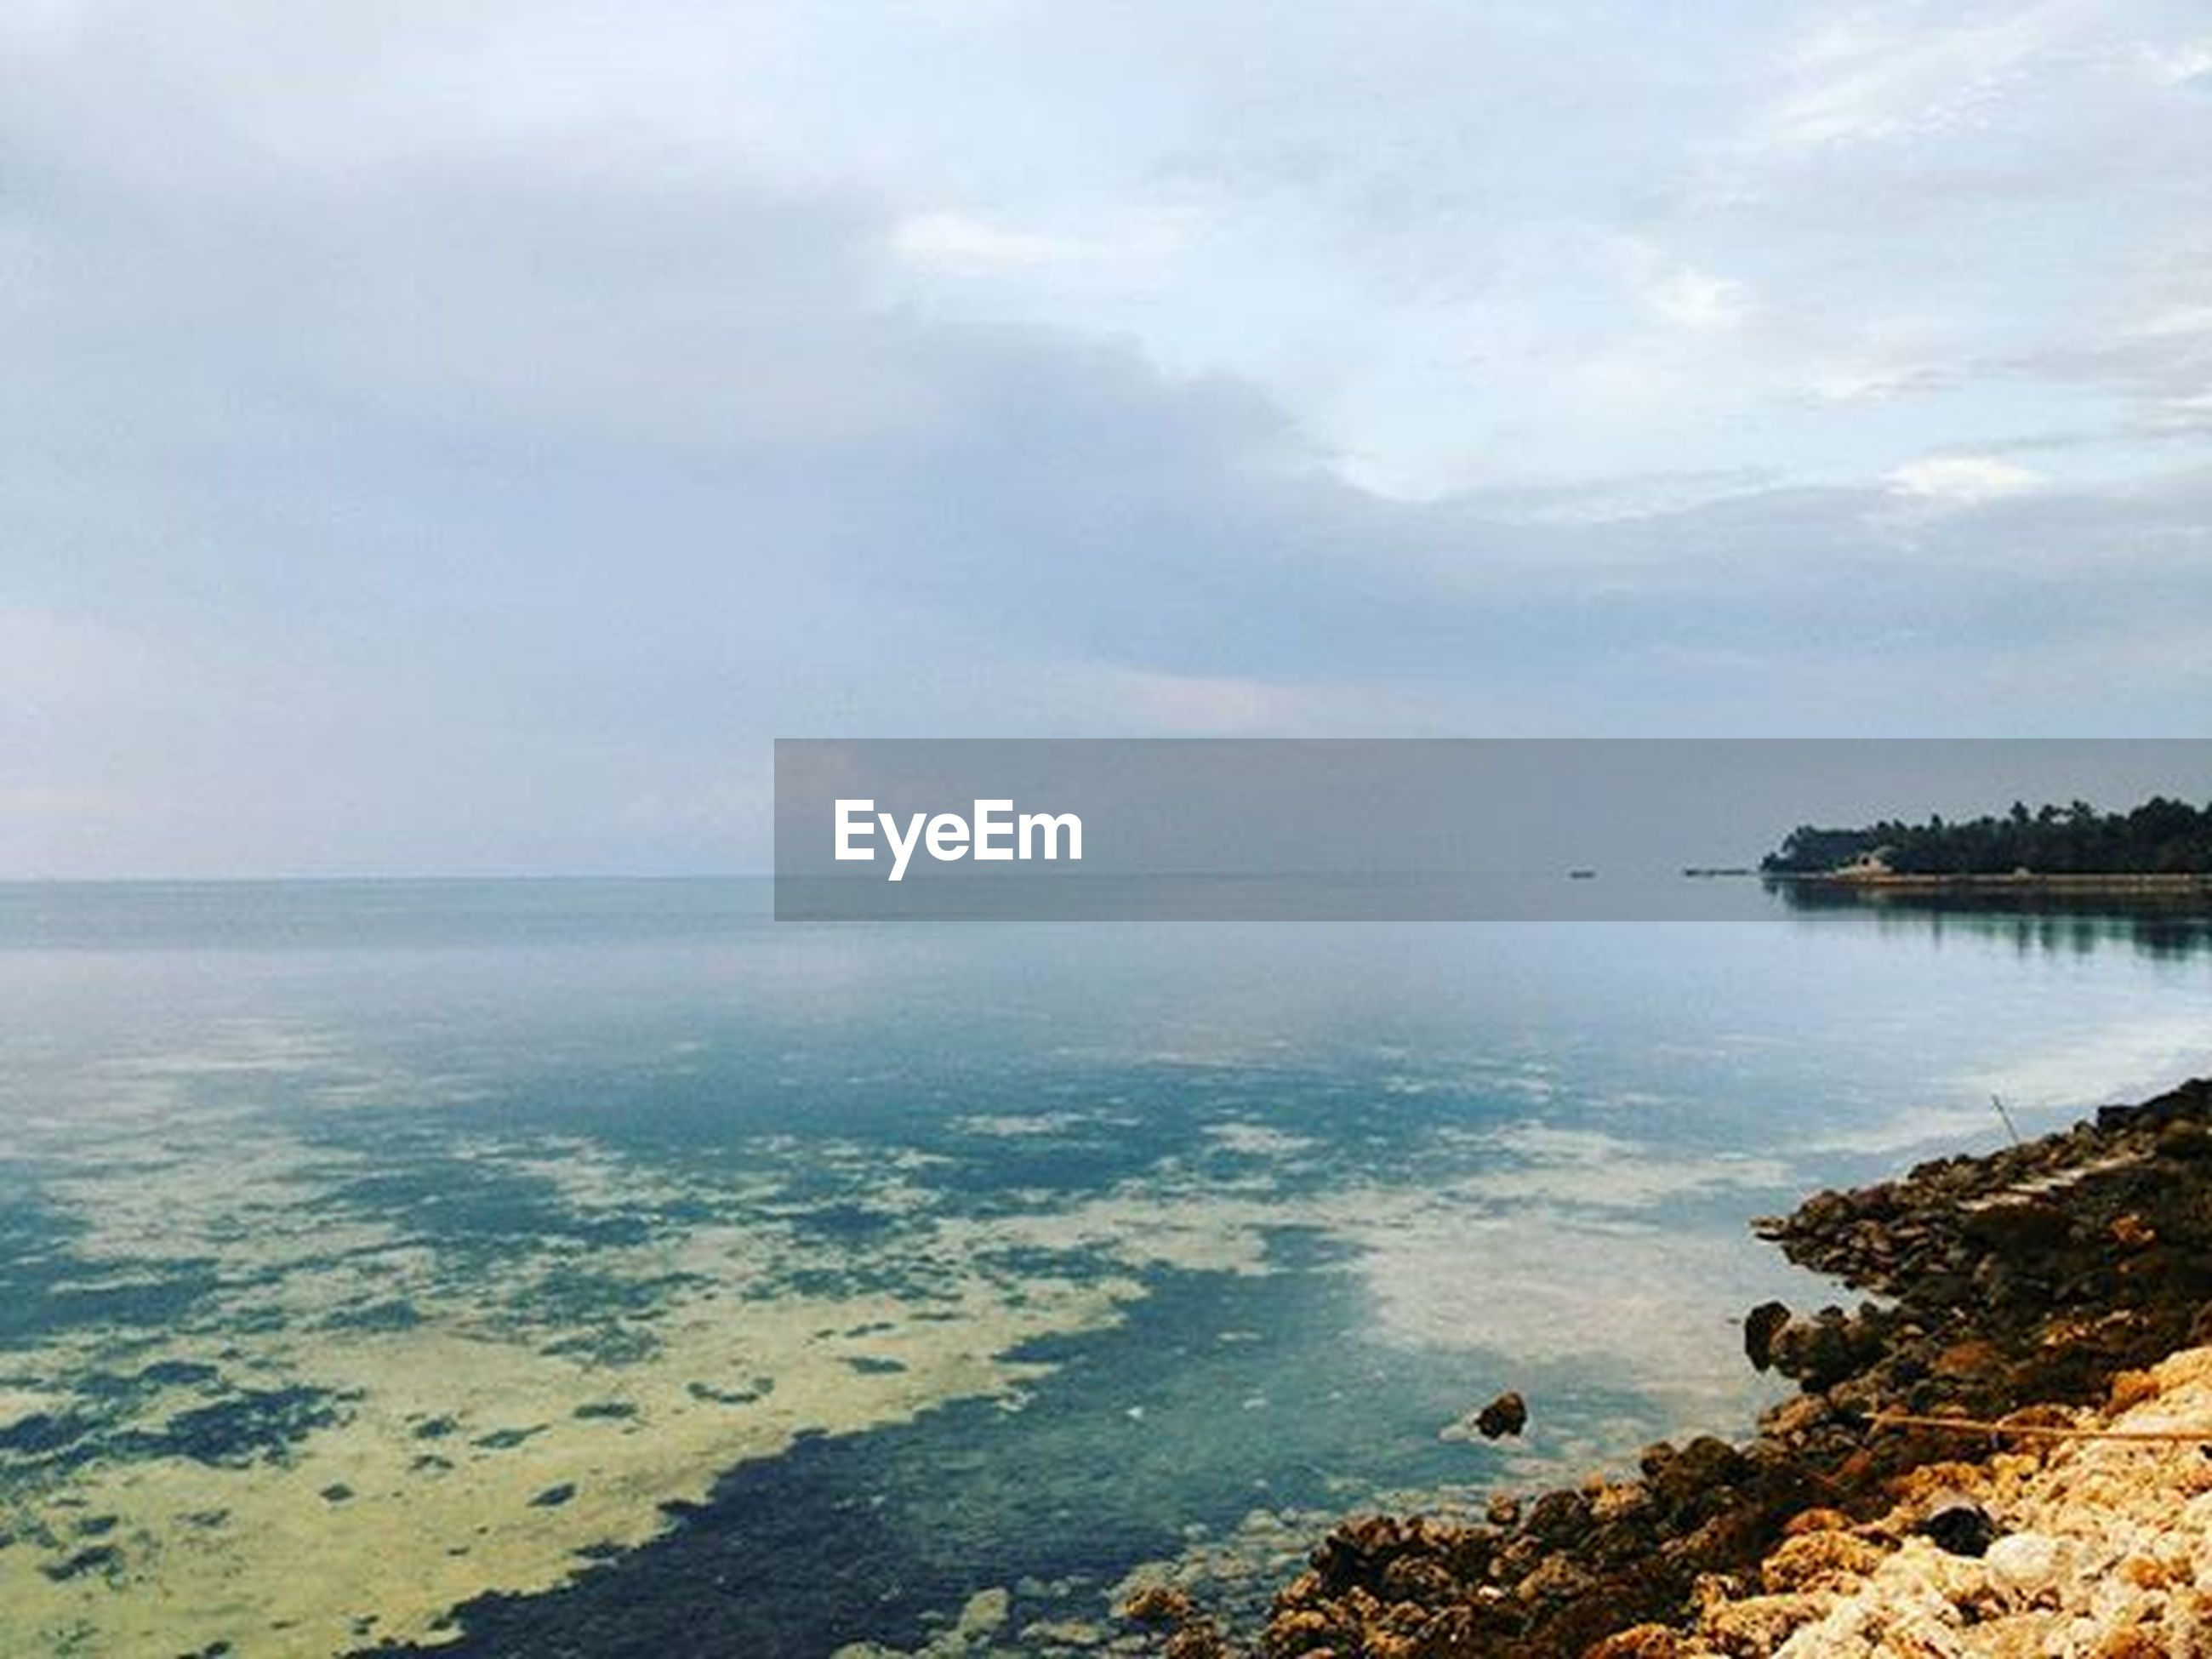 water, sea, beach, sky, tranquil scene, tranquility, scenics, horizon over water, shore, beauty in nature, nature, cloud - sky, idyllic, coastline, sand, cloud, calm, remote, rock - object, outdoors